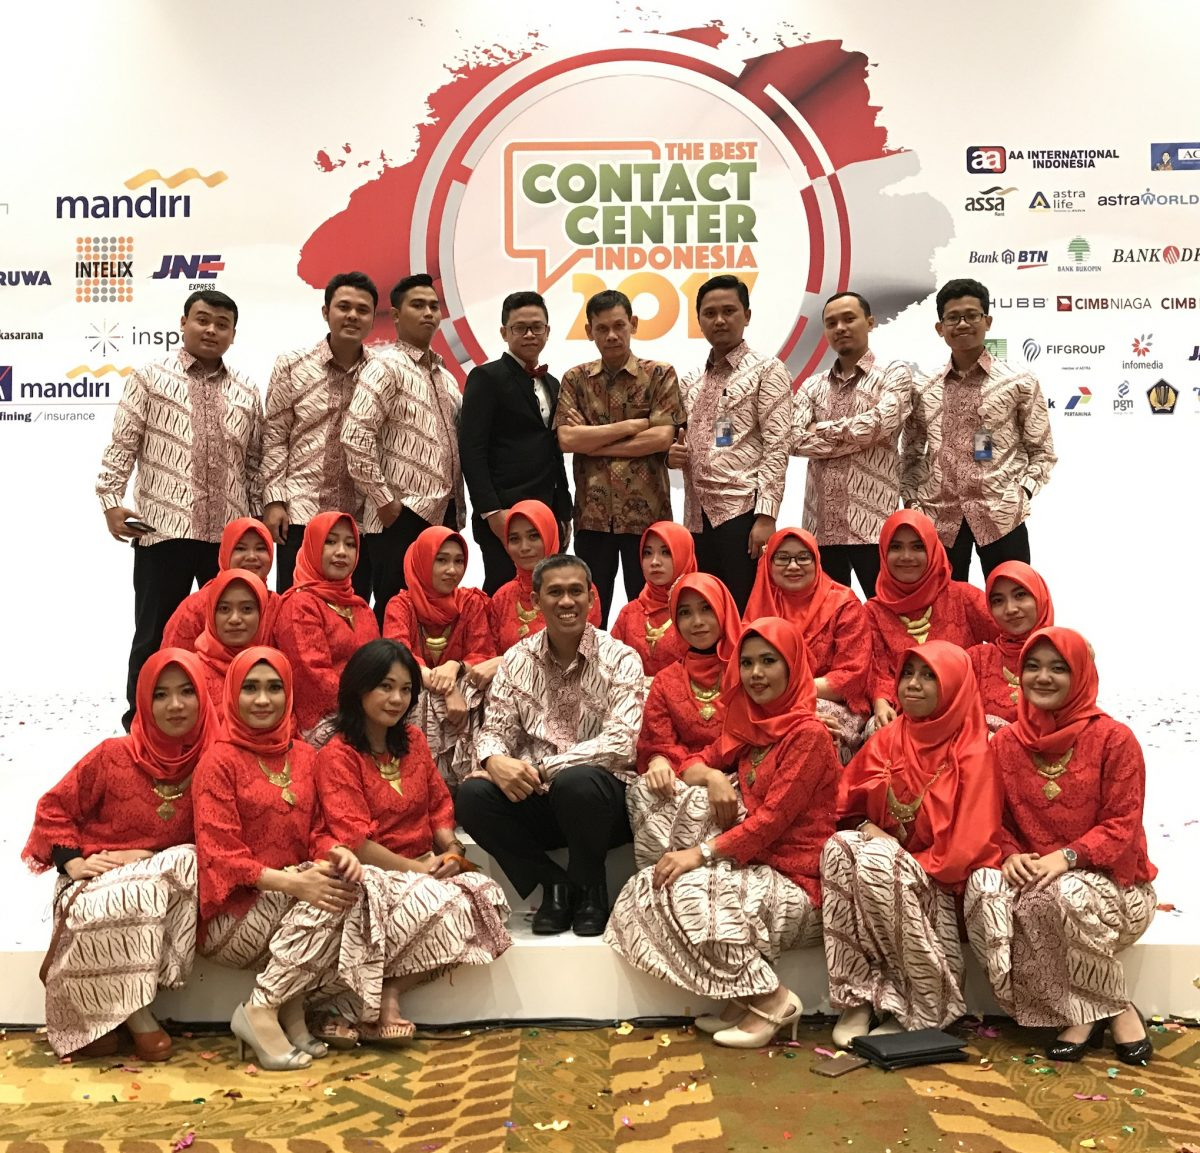 Pemenang The Best Contact Center Indonesia 2017